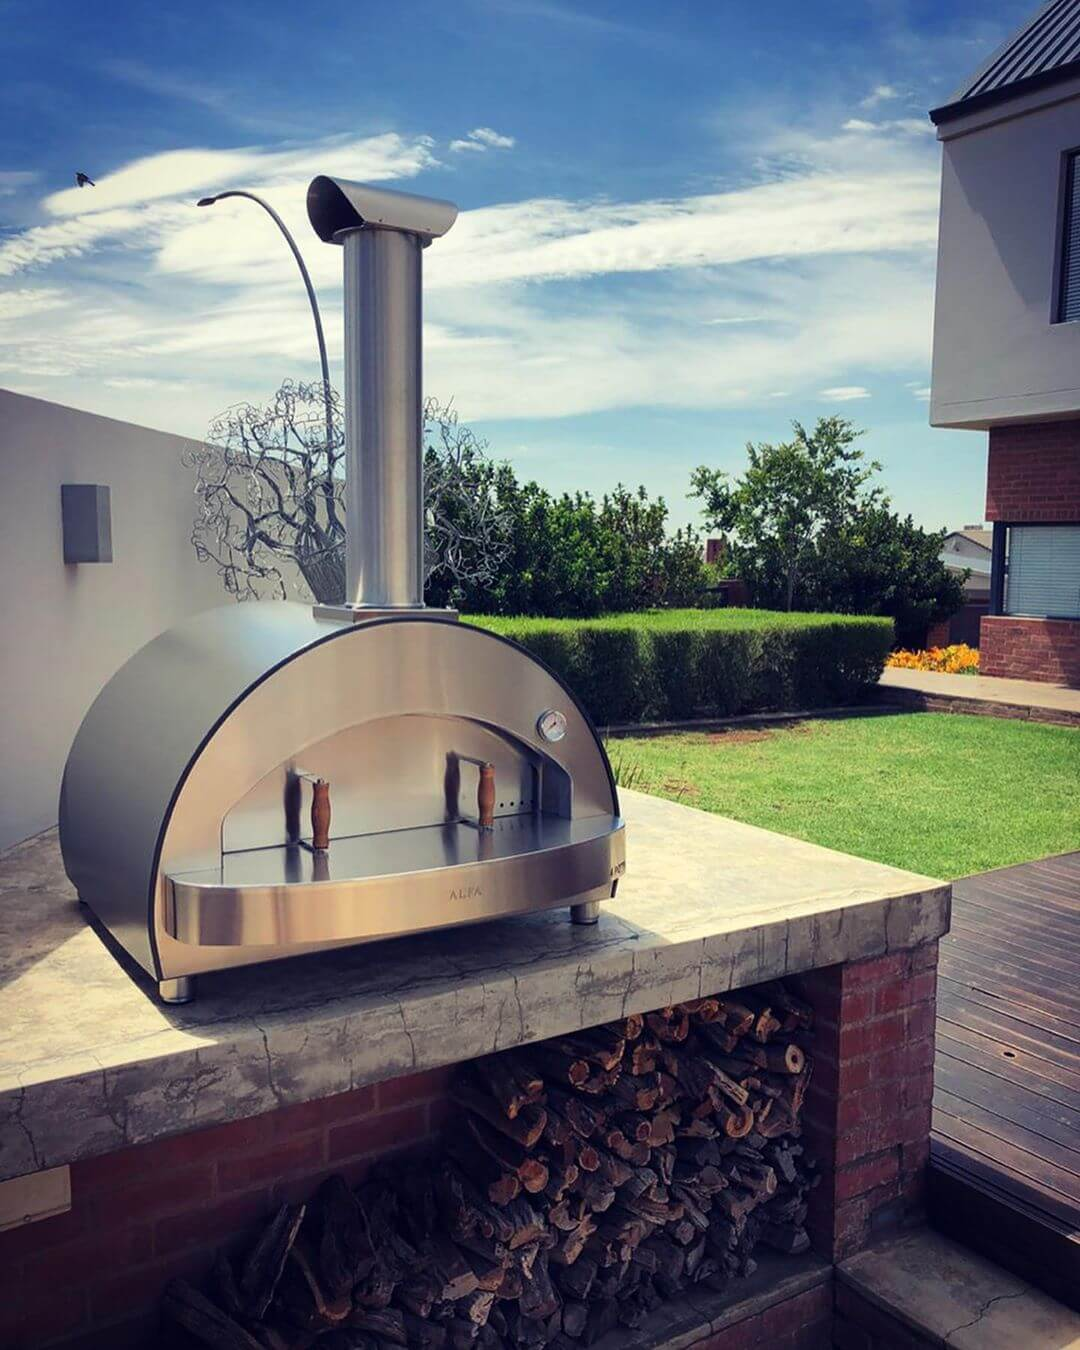 Wood Fired Pizza Ovens 5 Reasons To